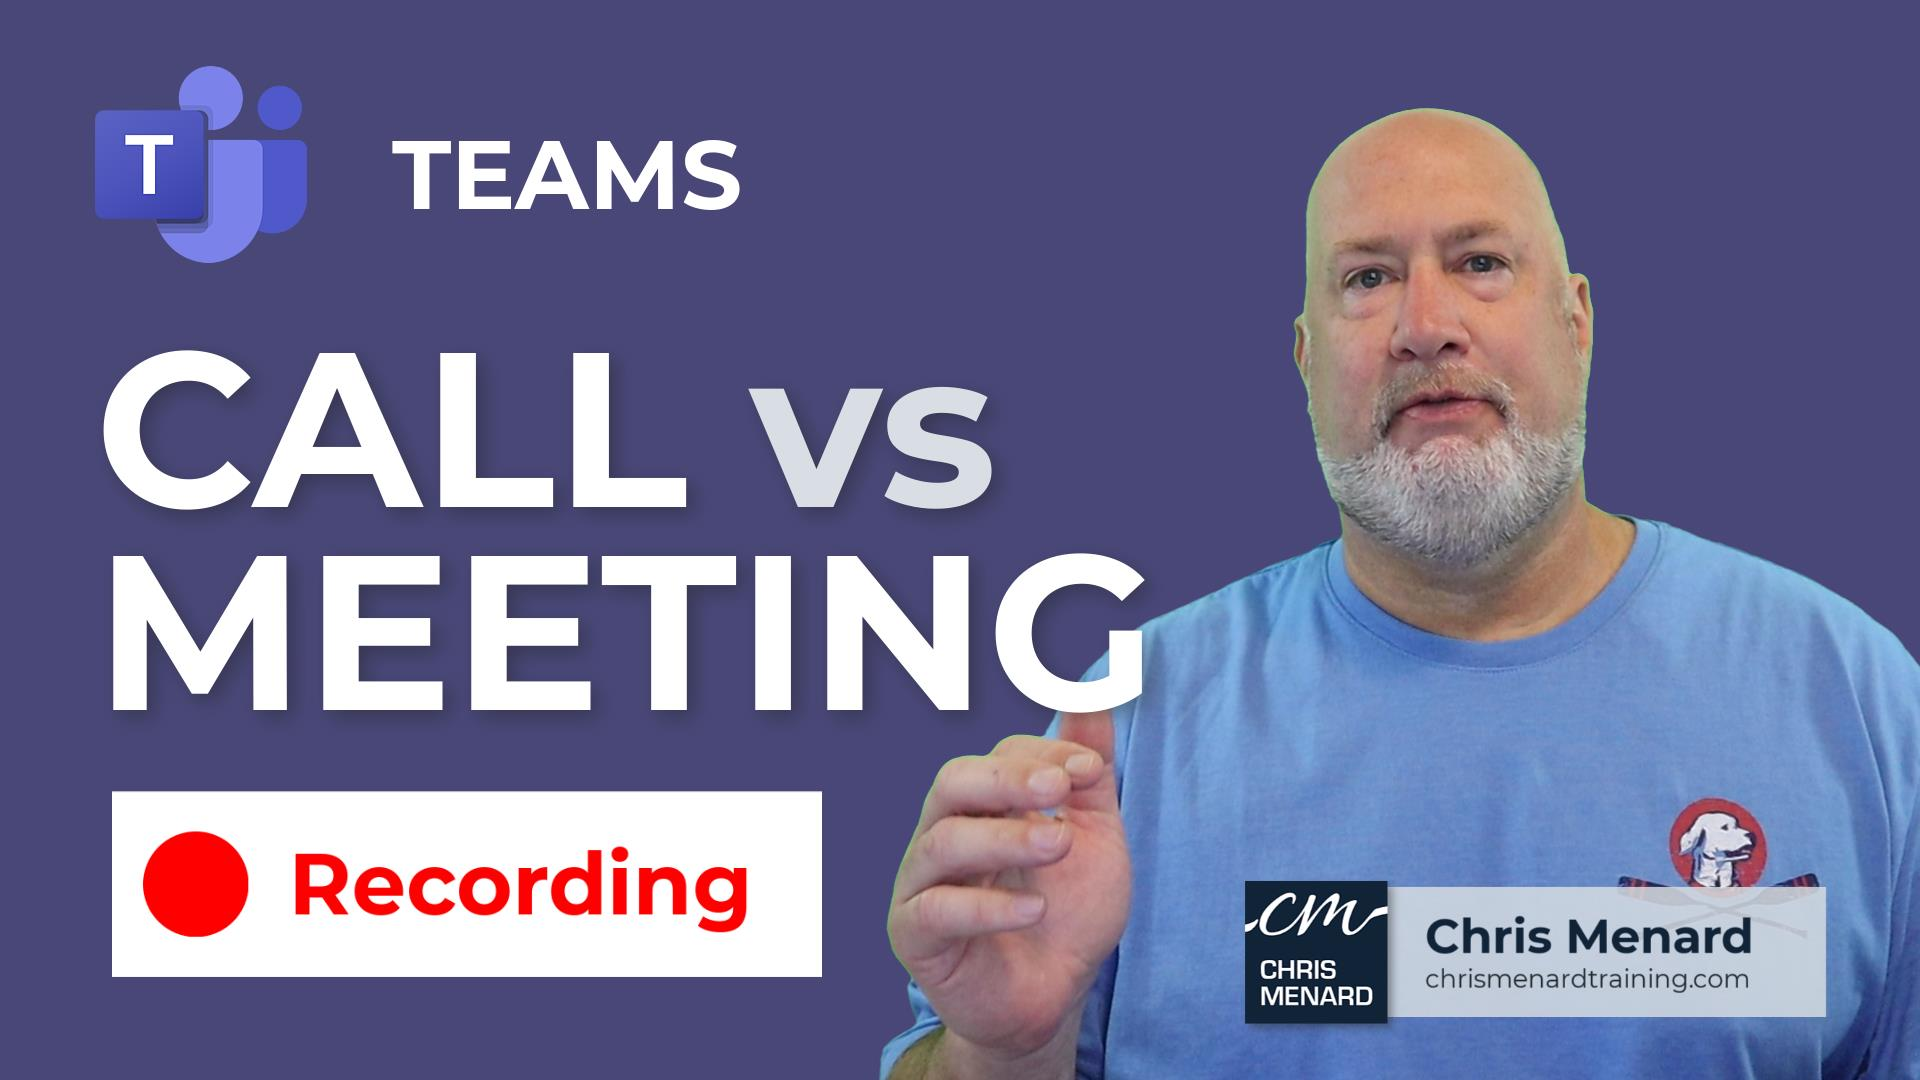 Teams  - Why can't I record? Video call vs. meeting